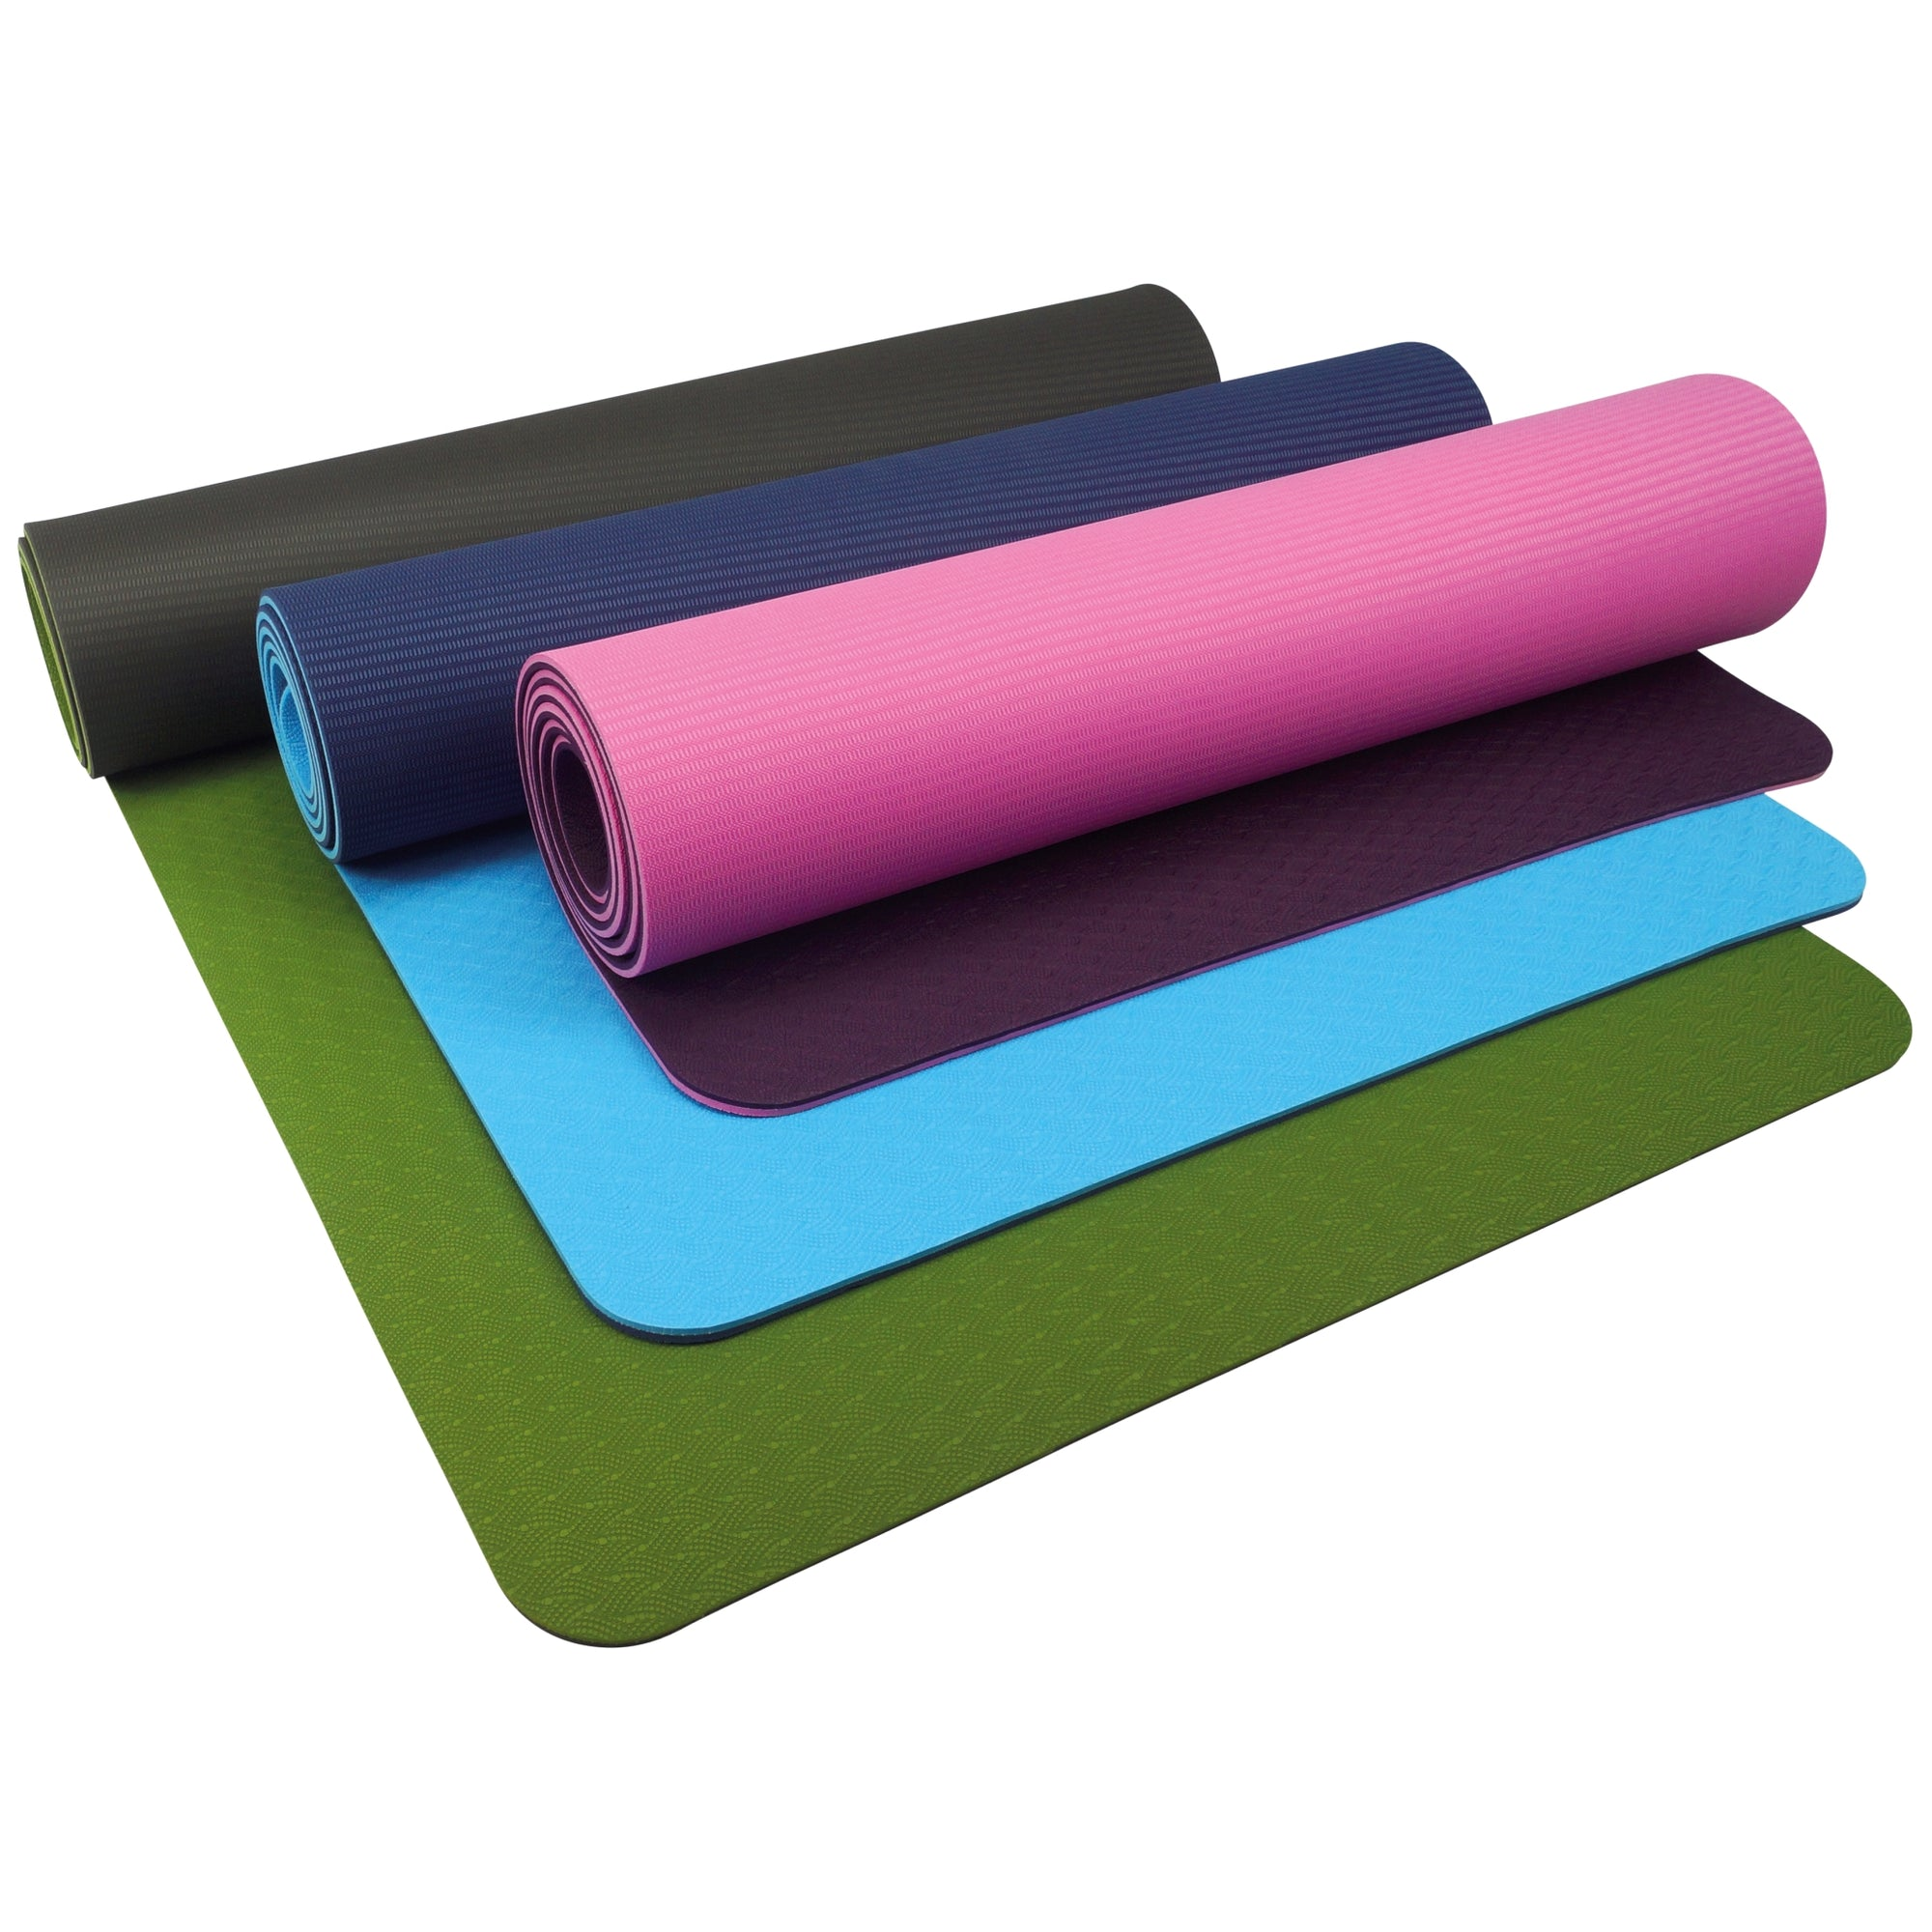 UFE 6mm TPE Yoga Mats laid on top of one another with contrast top to bottom in 3 different colour variations; sky/navy, mulberry/pink and olive/charcoal